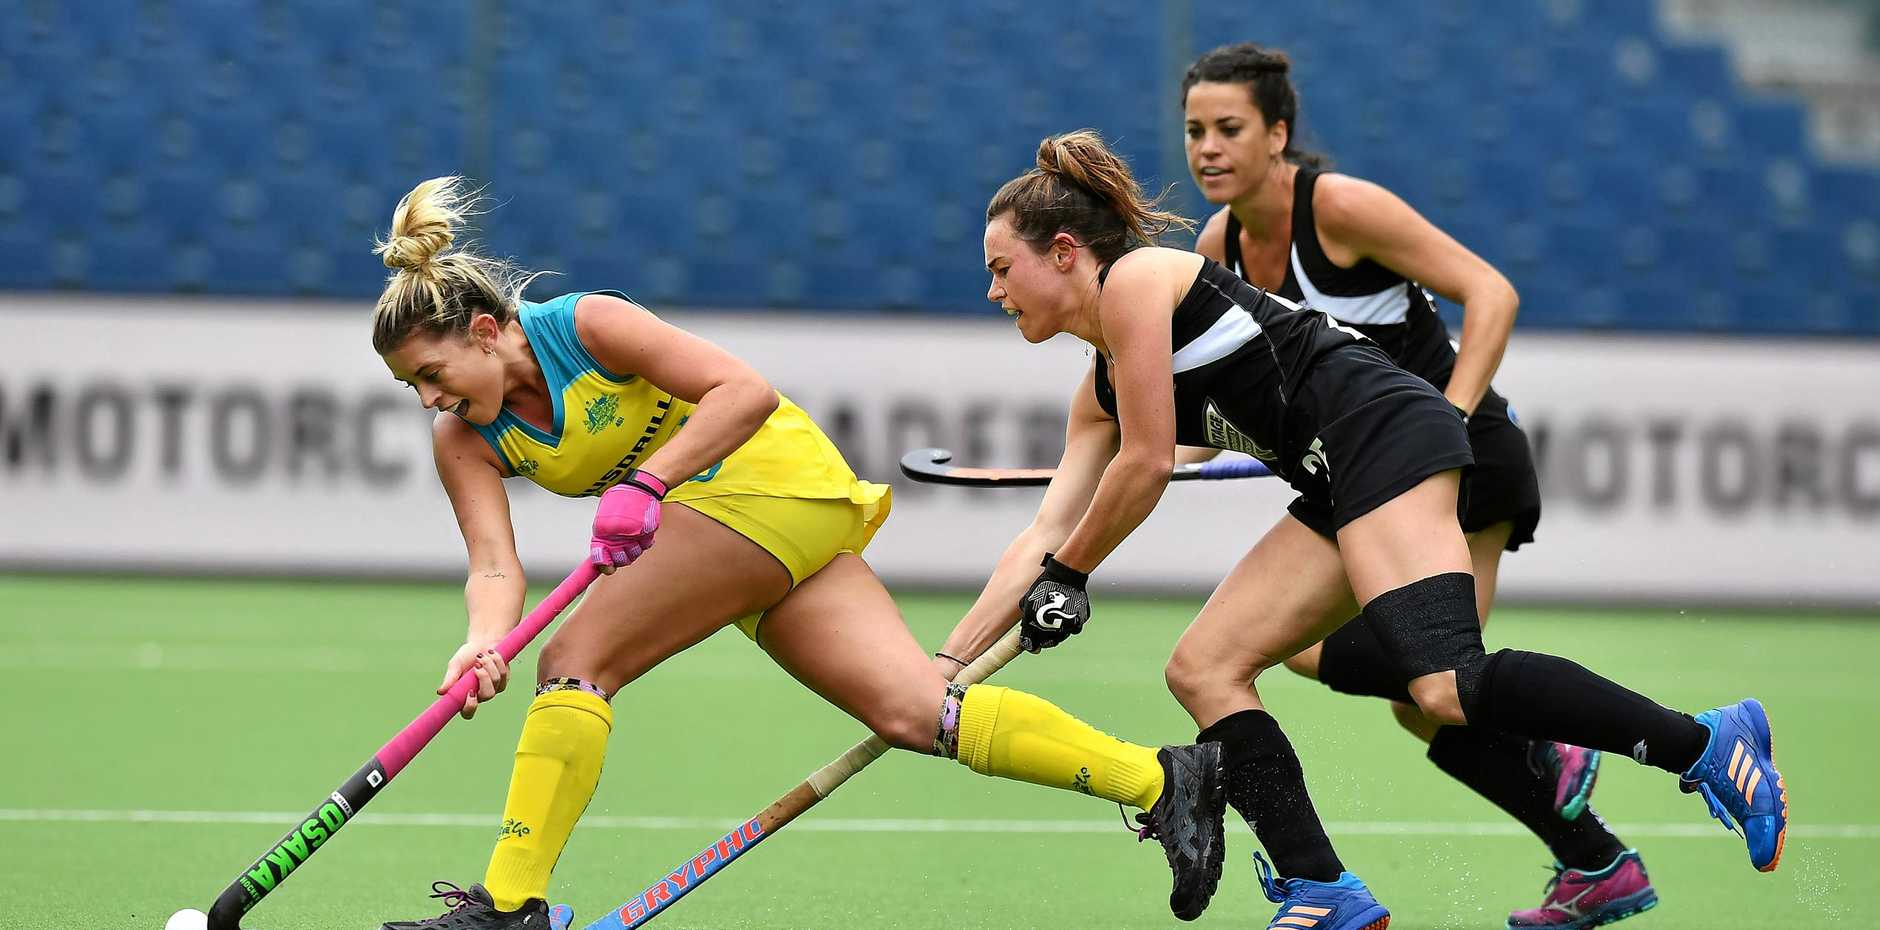 Ipswich Hockeyroos player Jordyn Holzberger outruns her New Zealand opponent during a World League semi-final match in Belgium earlier this year.